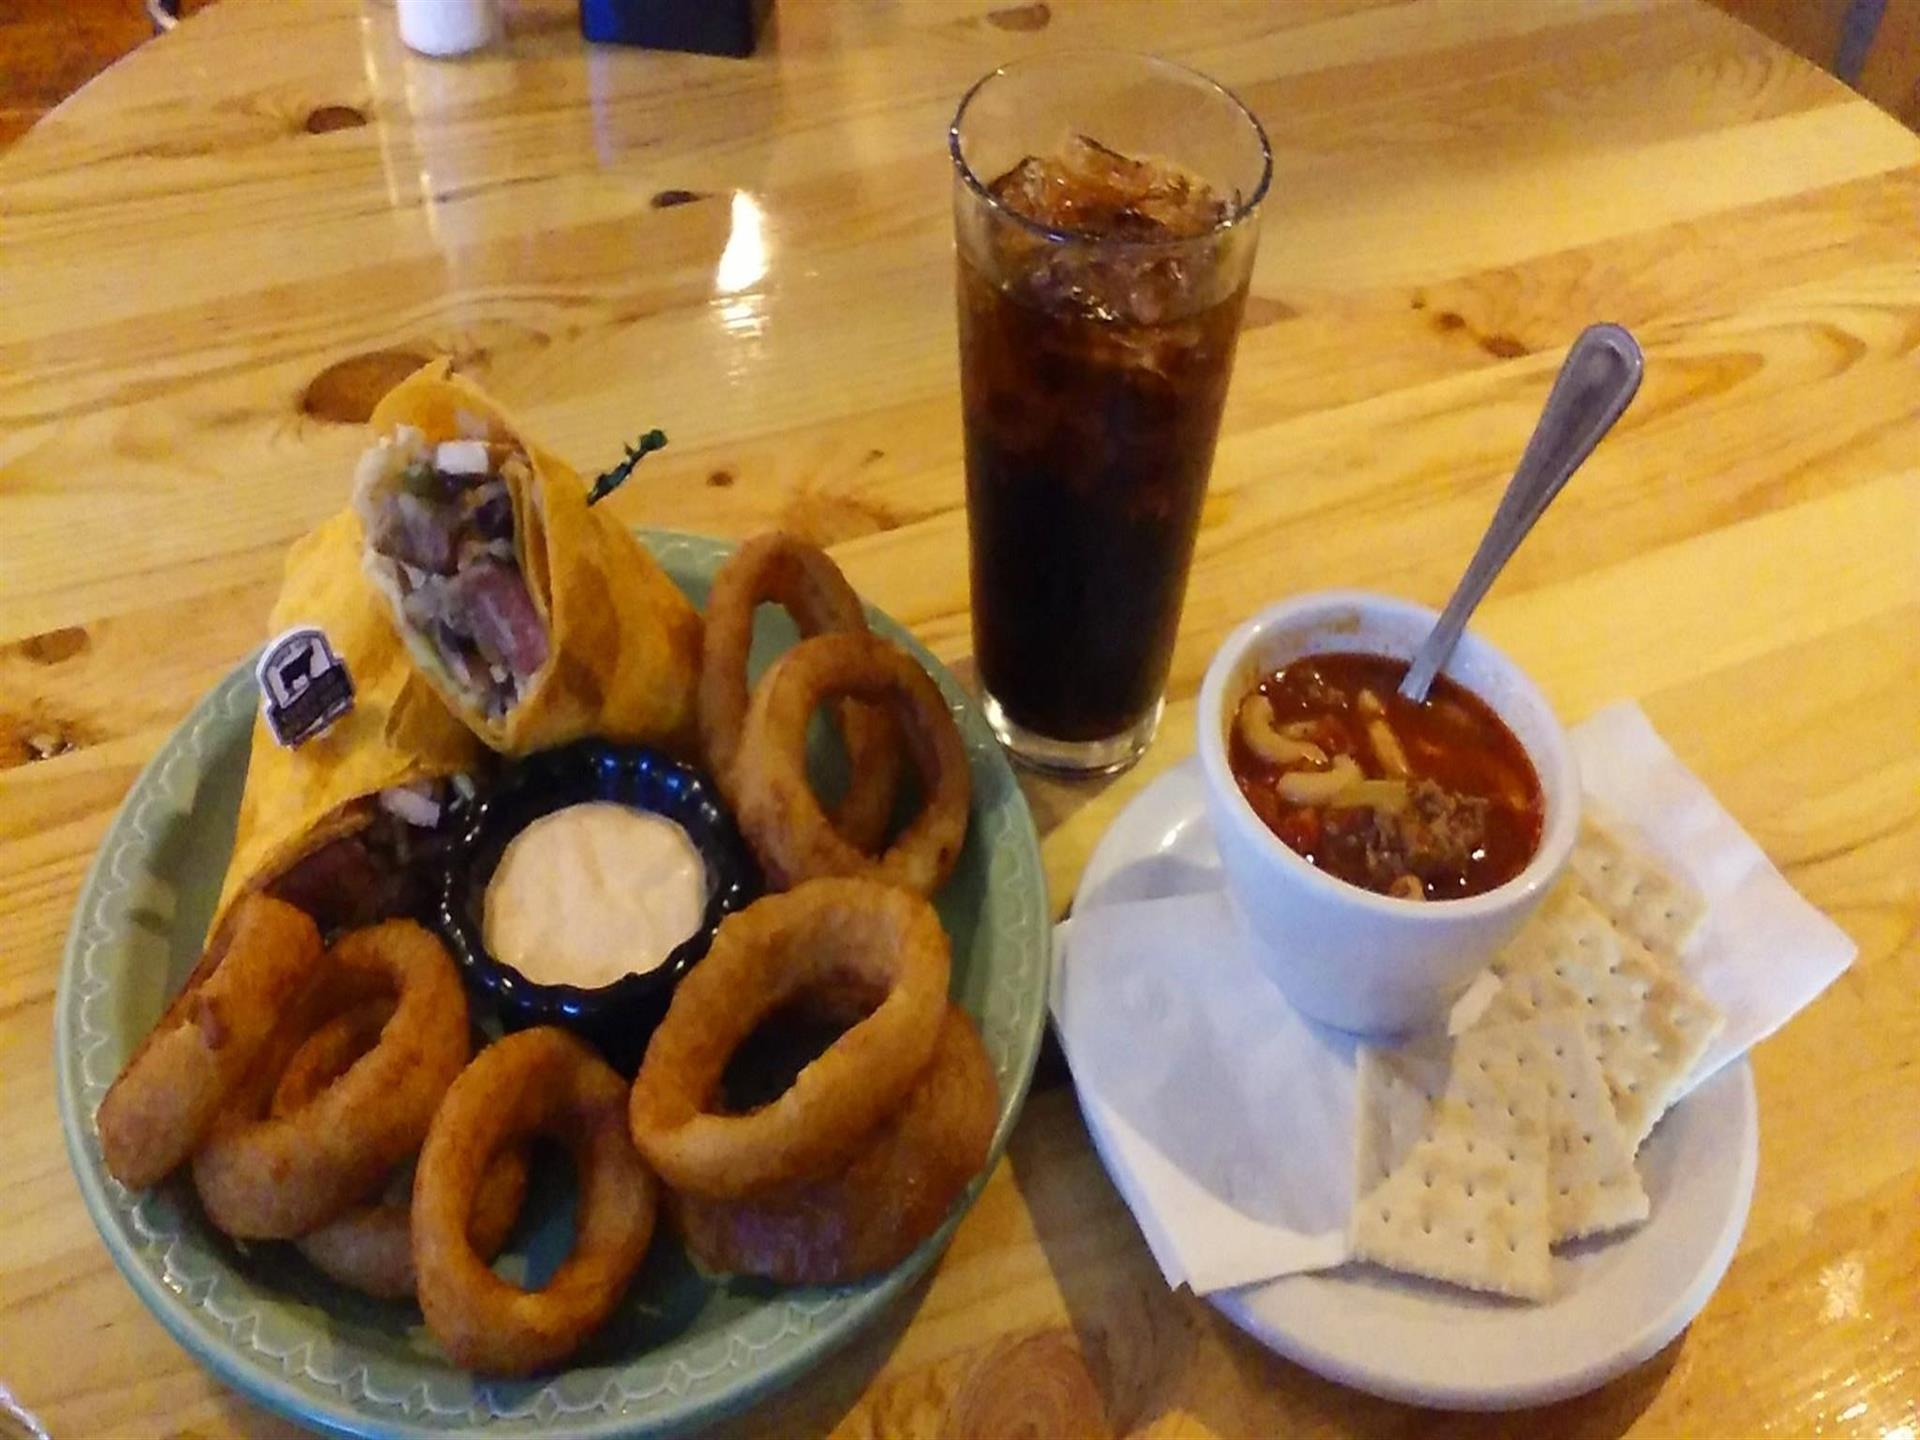 Wrap with a side of onion rings, a glass of soda and a small side of chili.